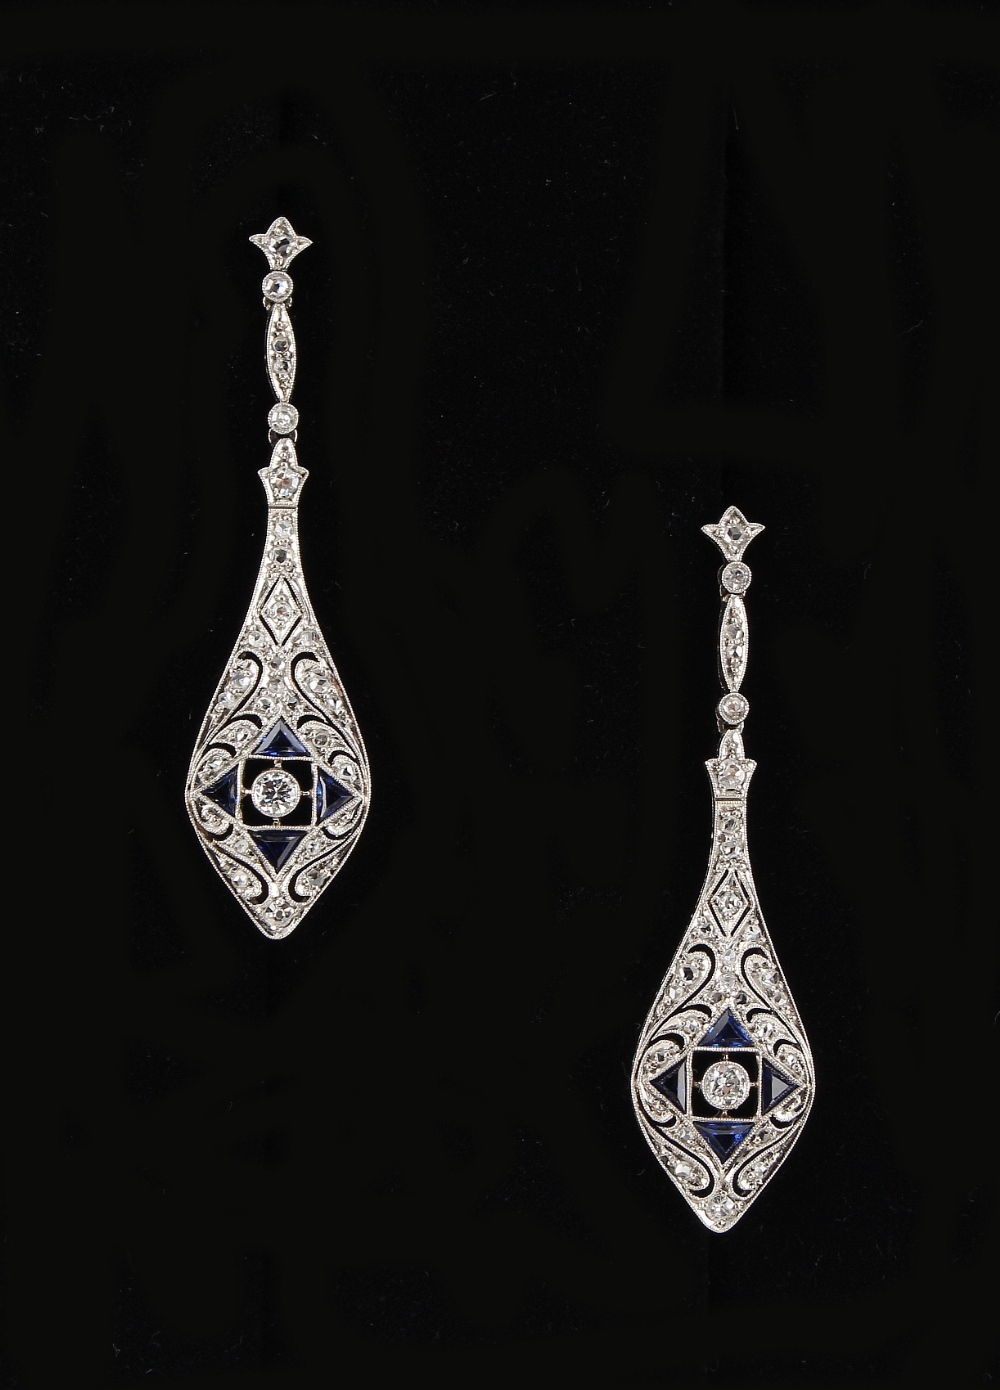 Lot 259 - A pair of Belle Epoque style sapphire & diamond pendant drop earrings, for pierced ears, each with